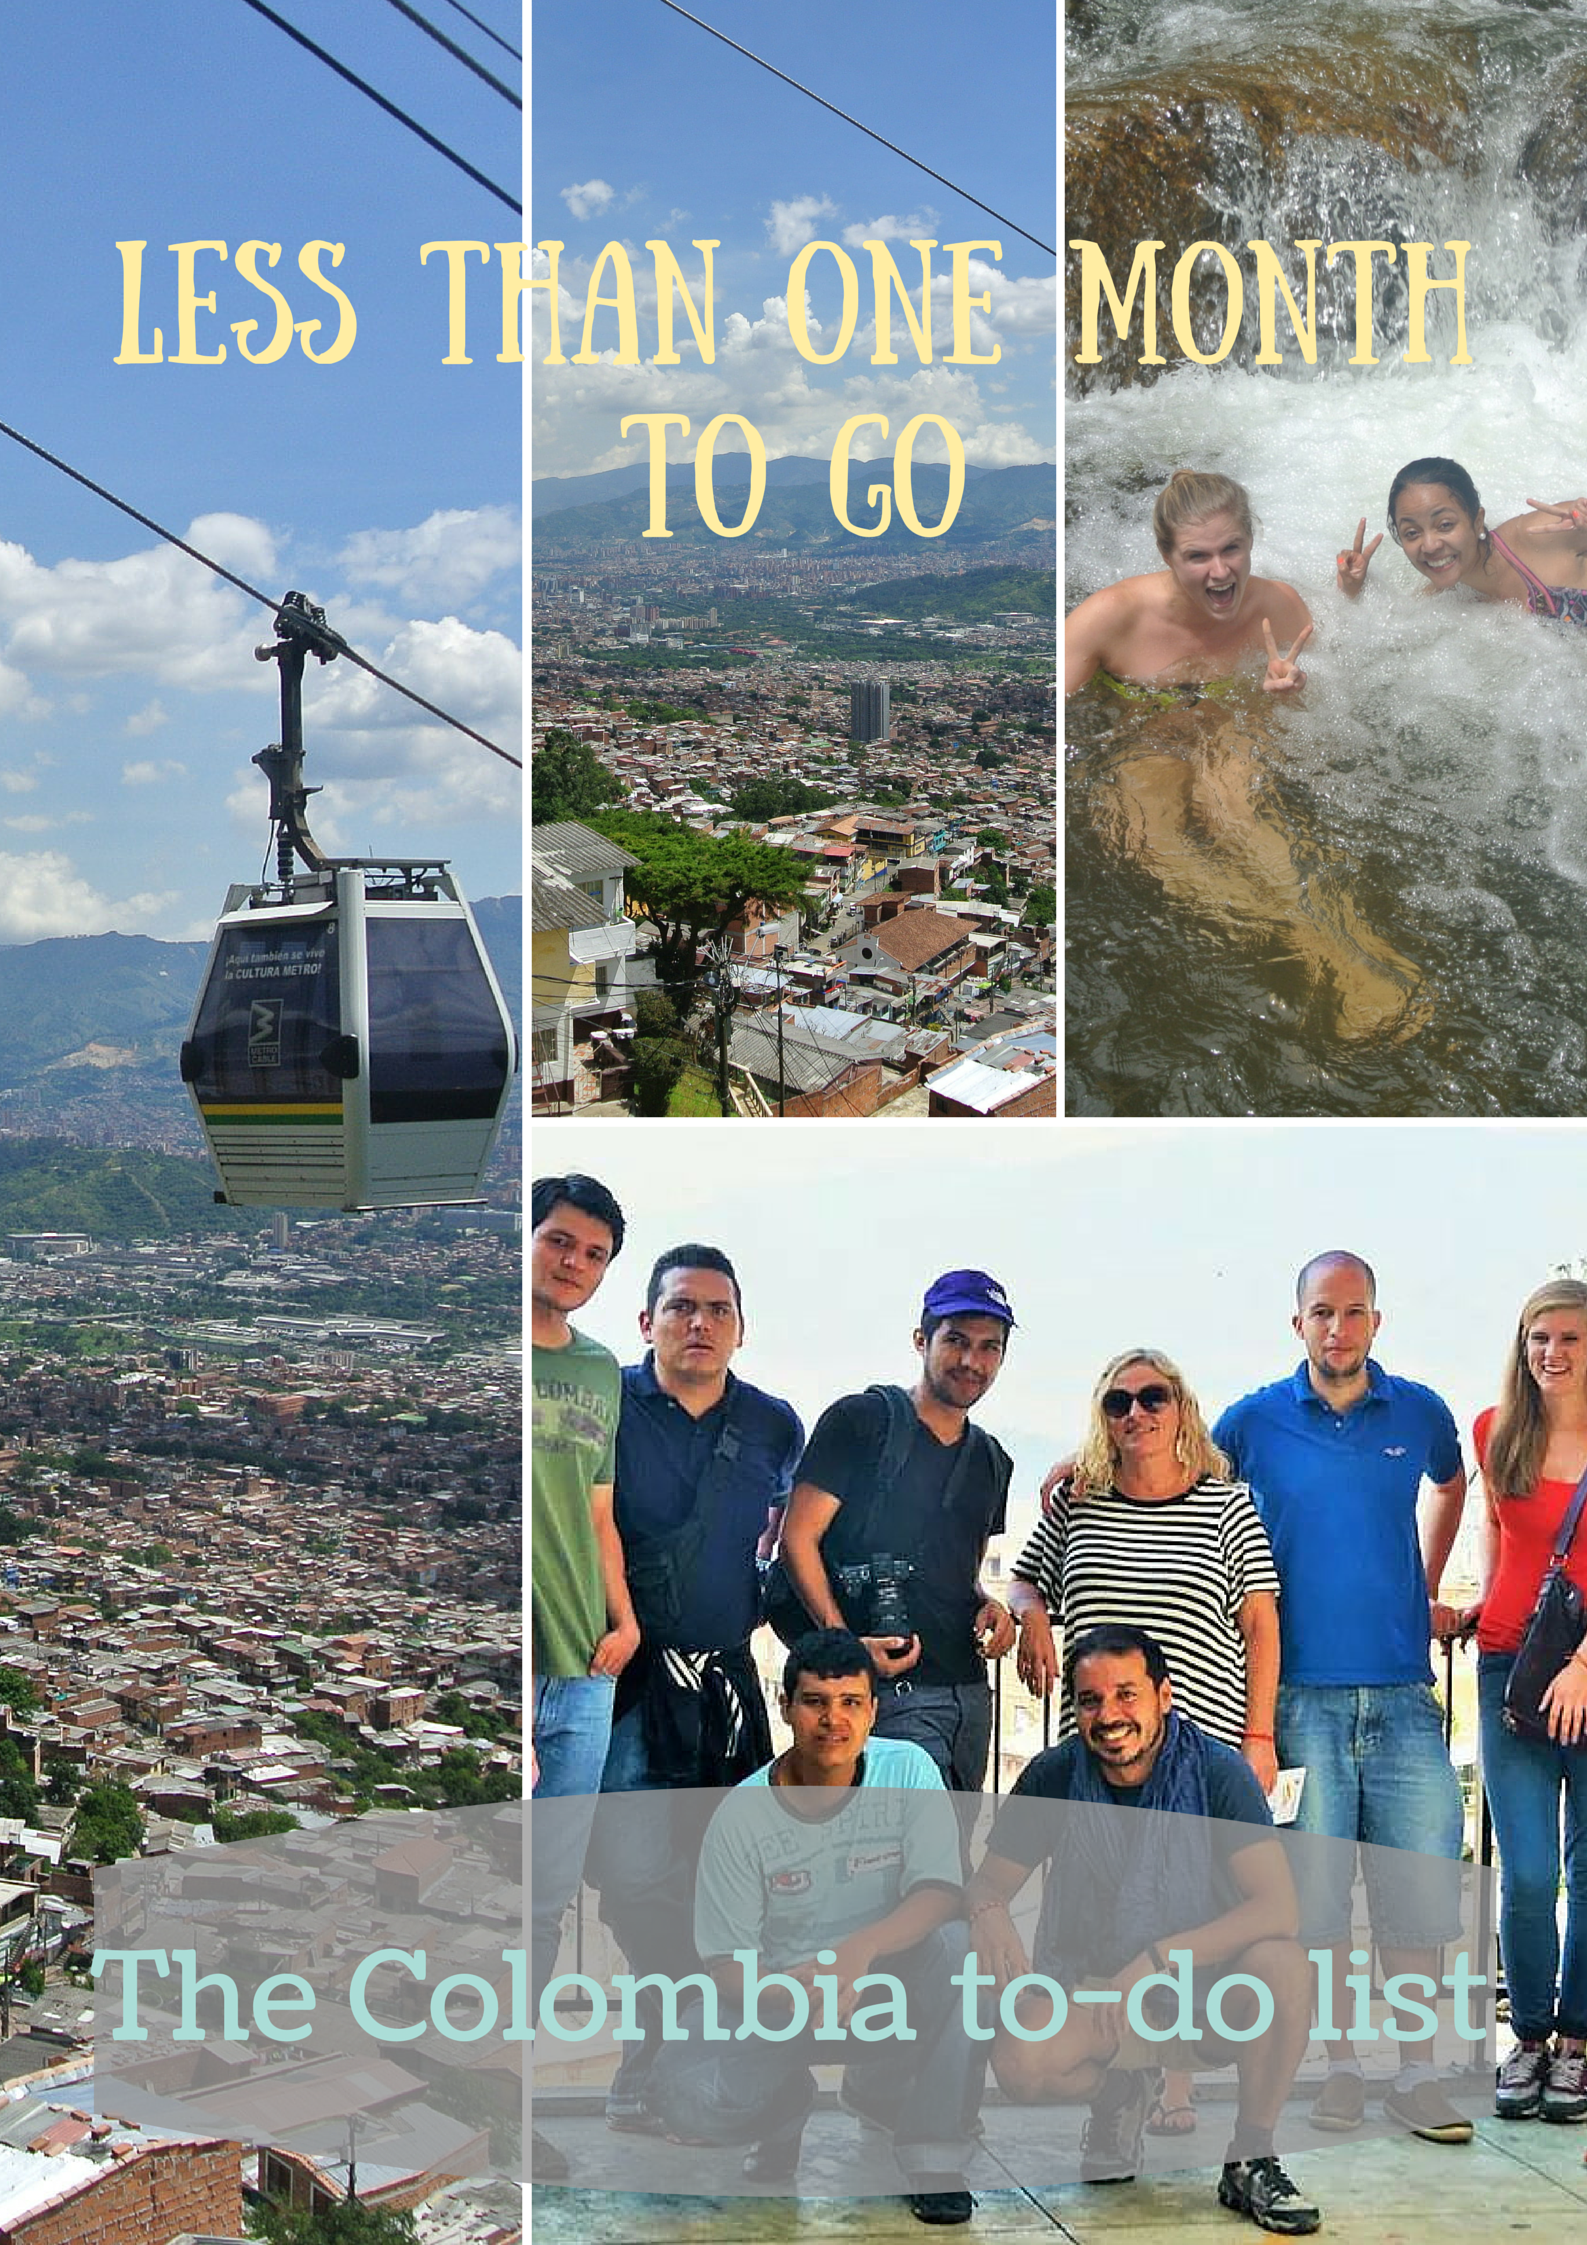 Here's what I want to do before I leave Colombia